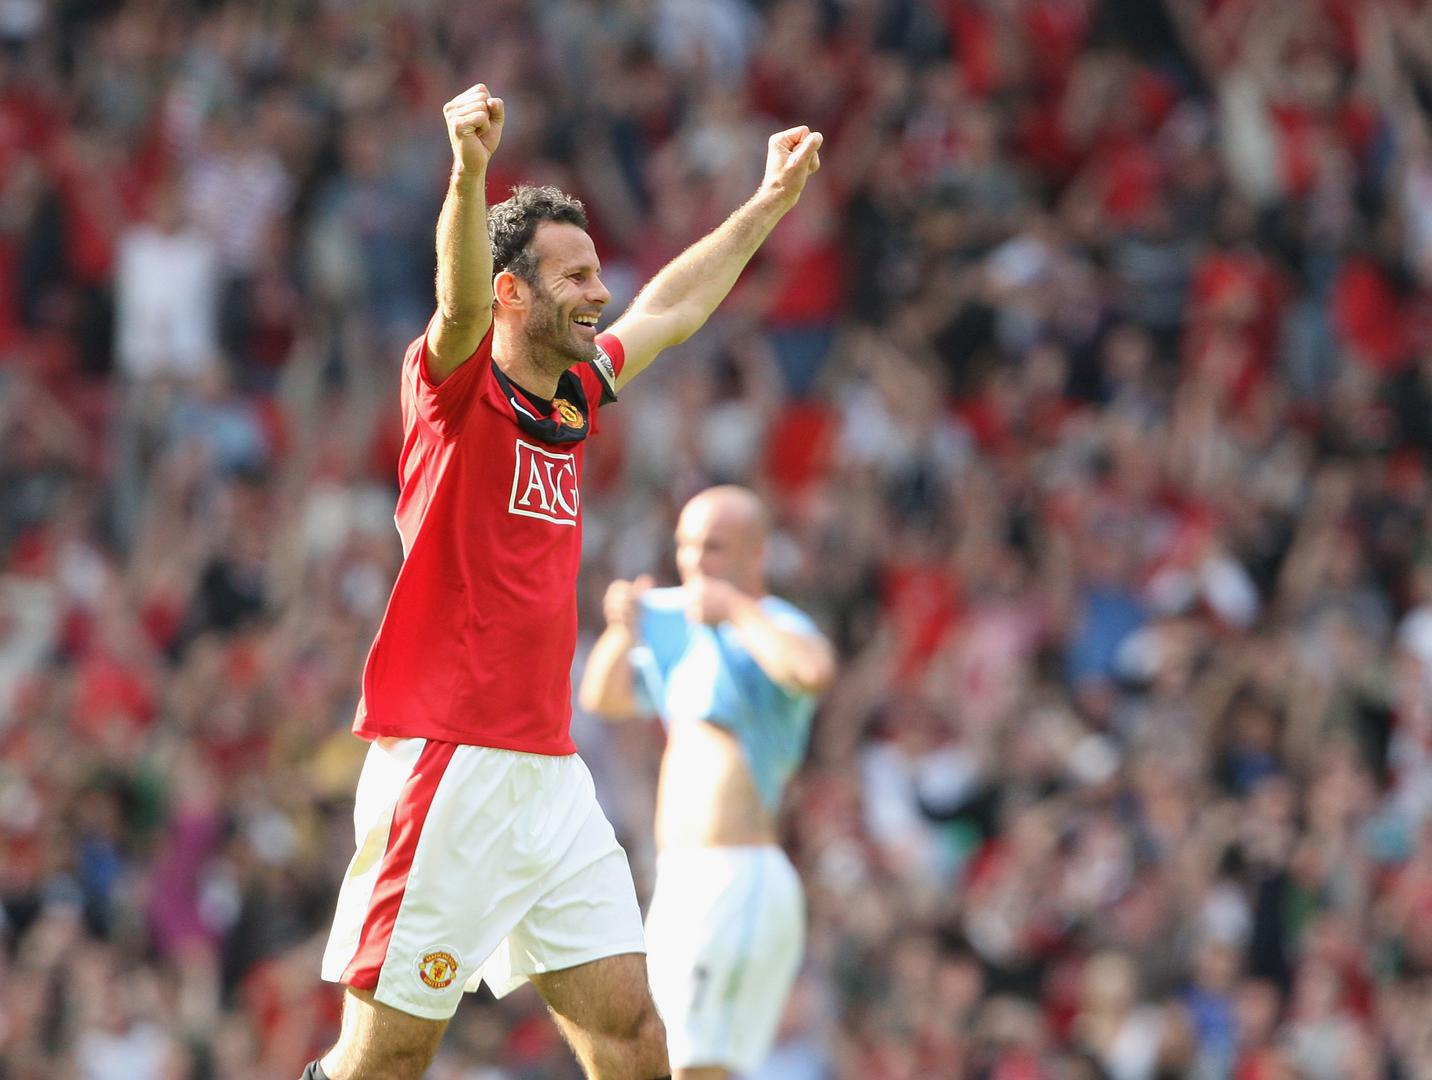 Ryan Giggs celebrates our 4-3 win over Manchester City.